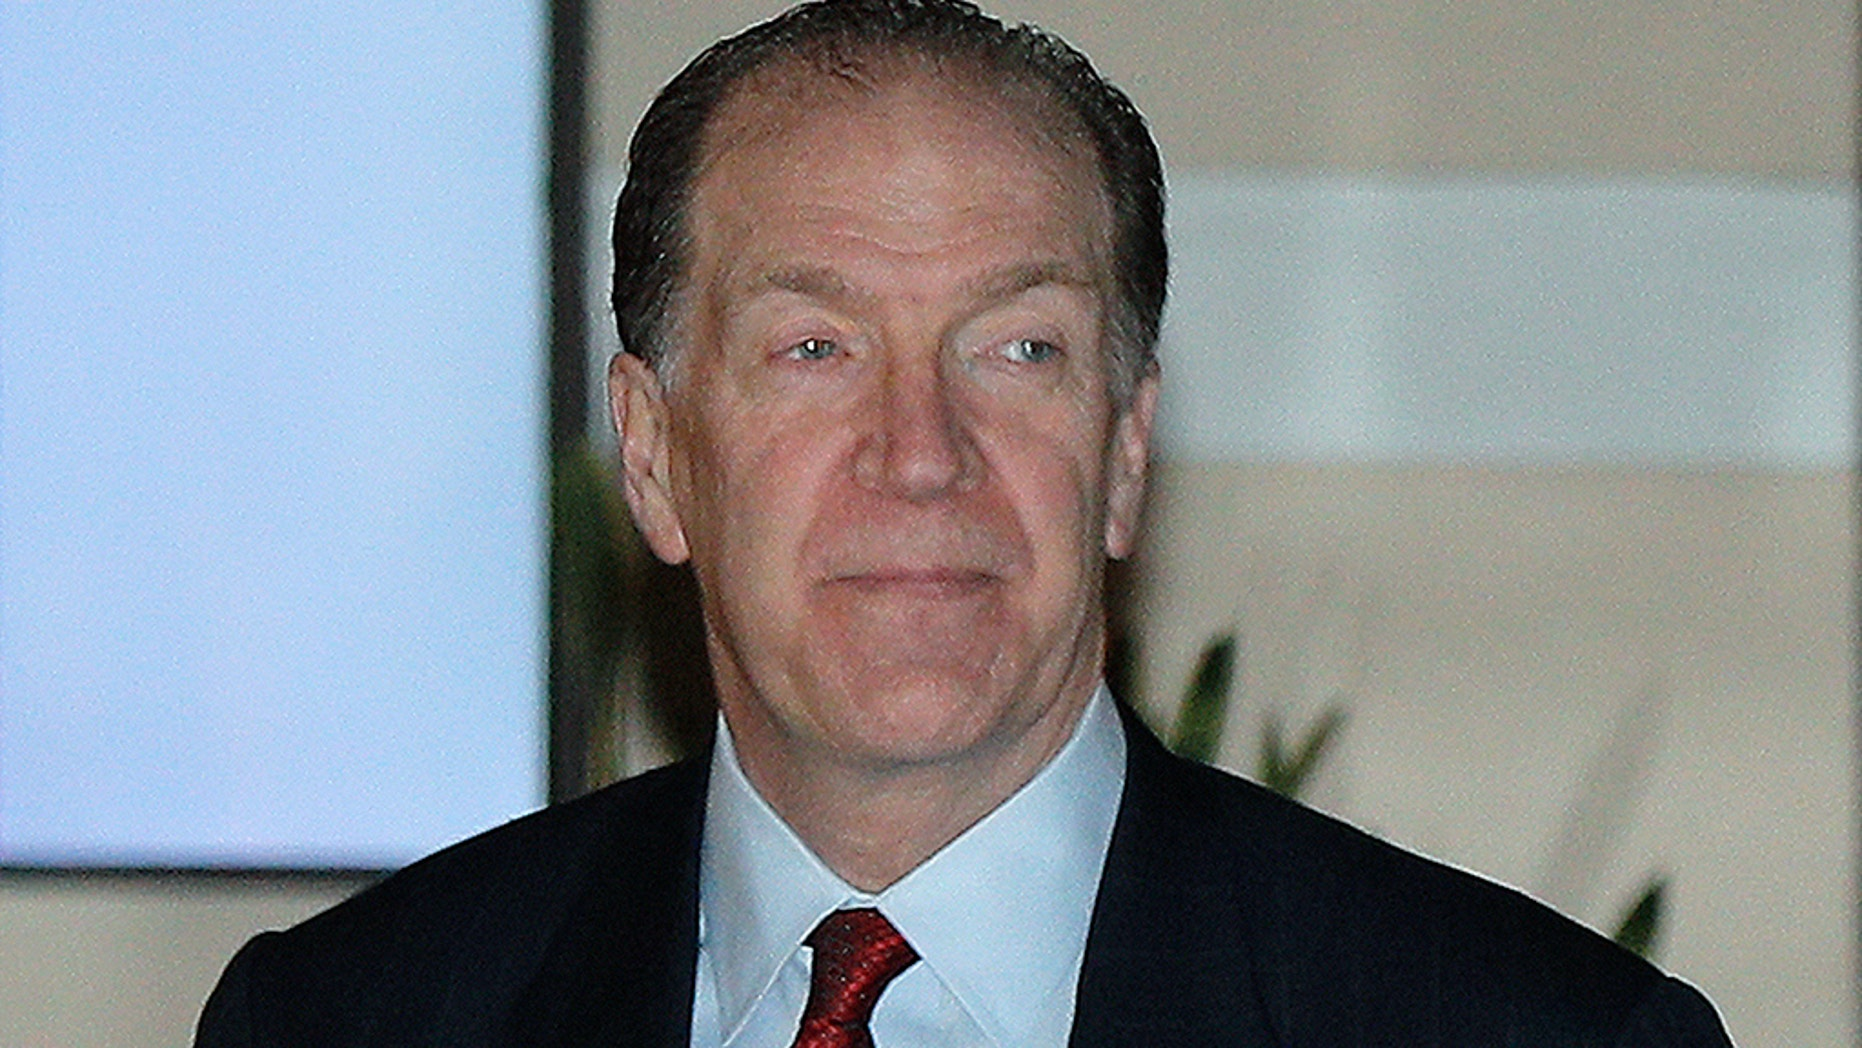 Department of the Treasury Under Secretary for International Affairs David Malpass leaves a hotel in Beijing, Wednesday, Feb. 13, 2019. President Trump has nominated Malpass to head the World Bank. (AP Photo/Andy Wong)